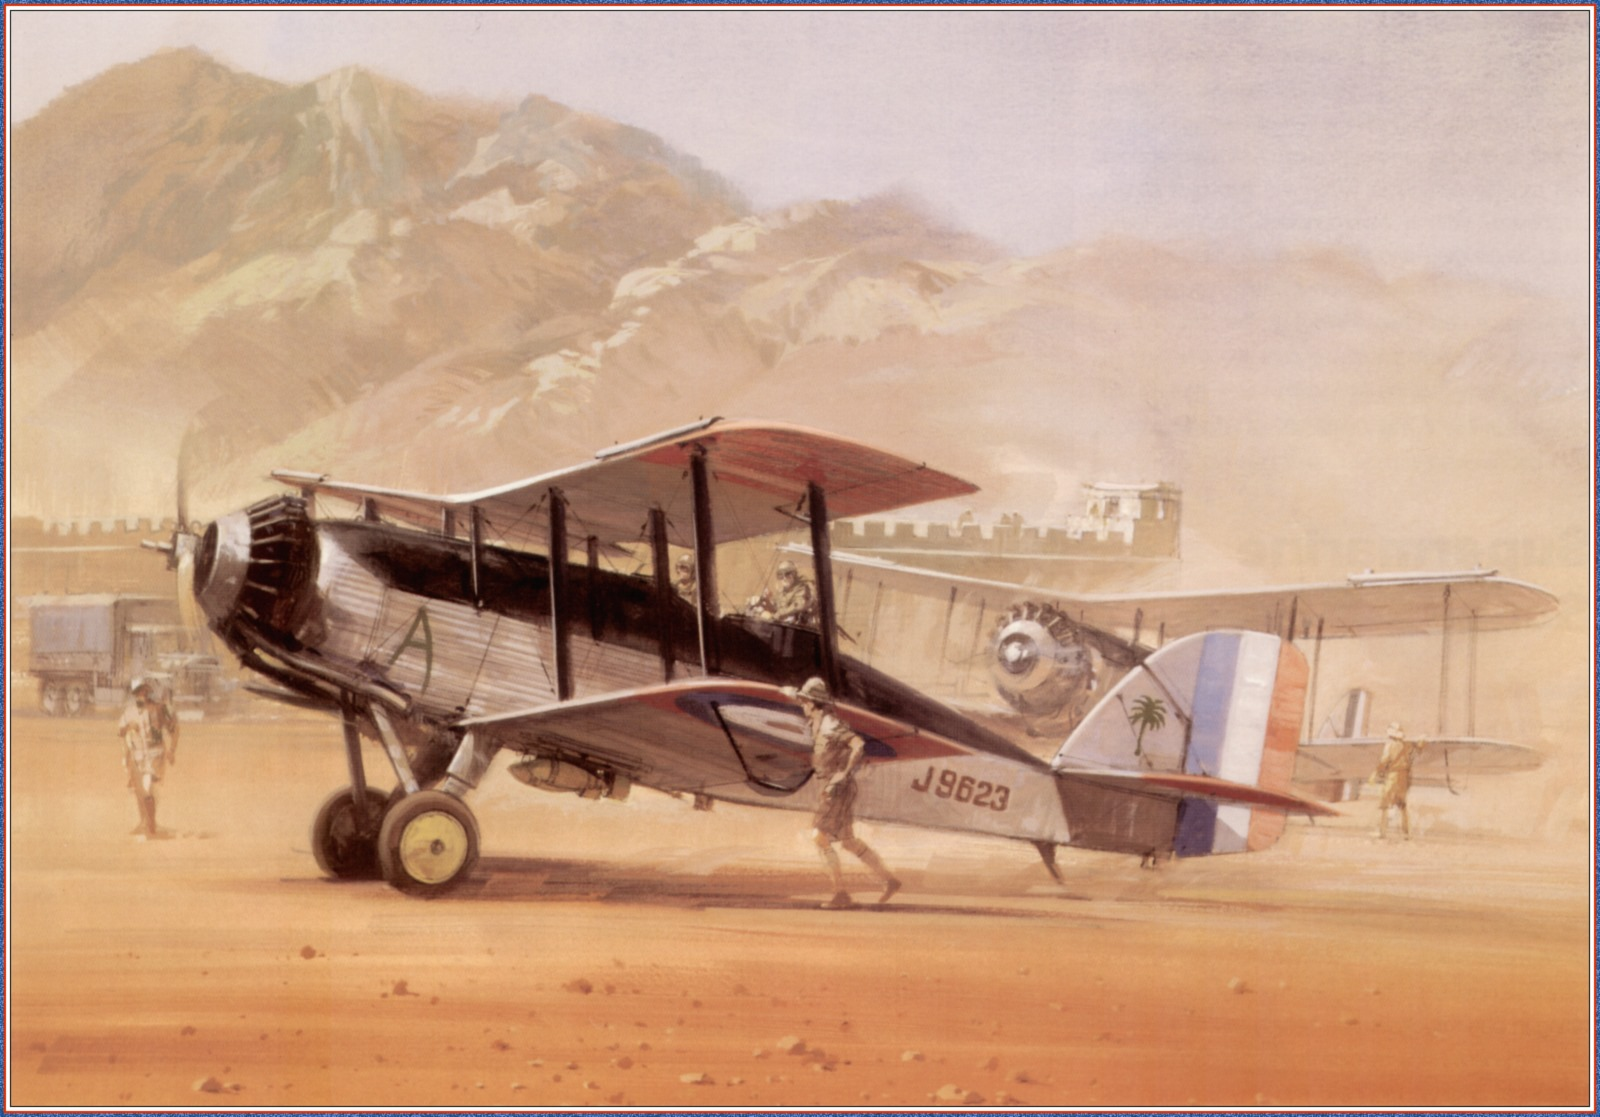 TurnerMichael-1928_Westland_Wapiti-We@RSCC.jpg